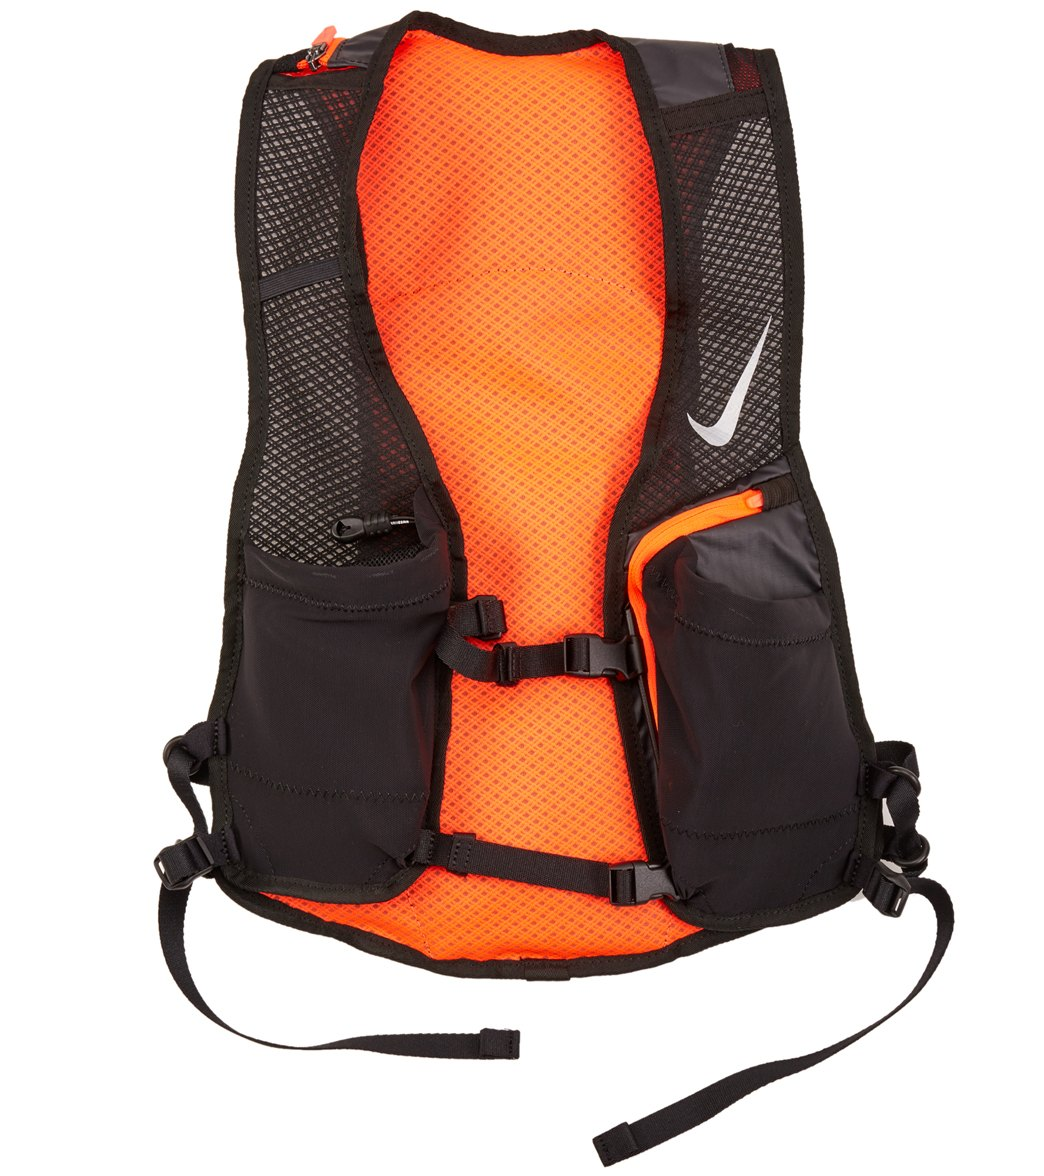 27af7ba6a1 Nike Hydration Race Vest at SwimOutlet.com - Free Shipping